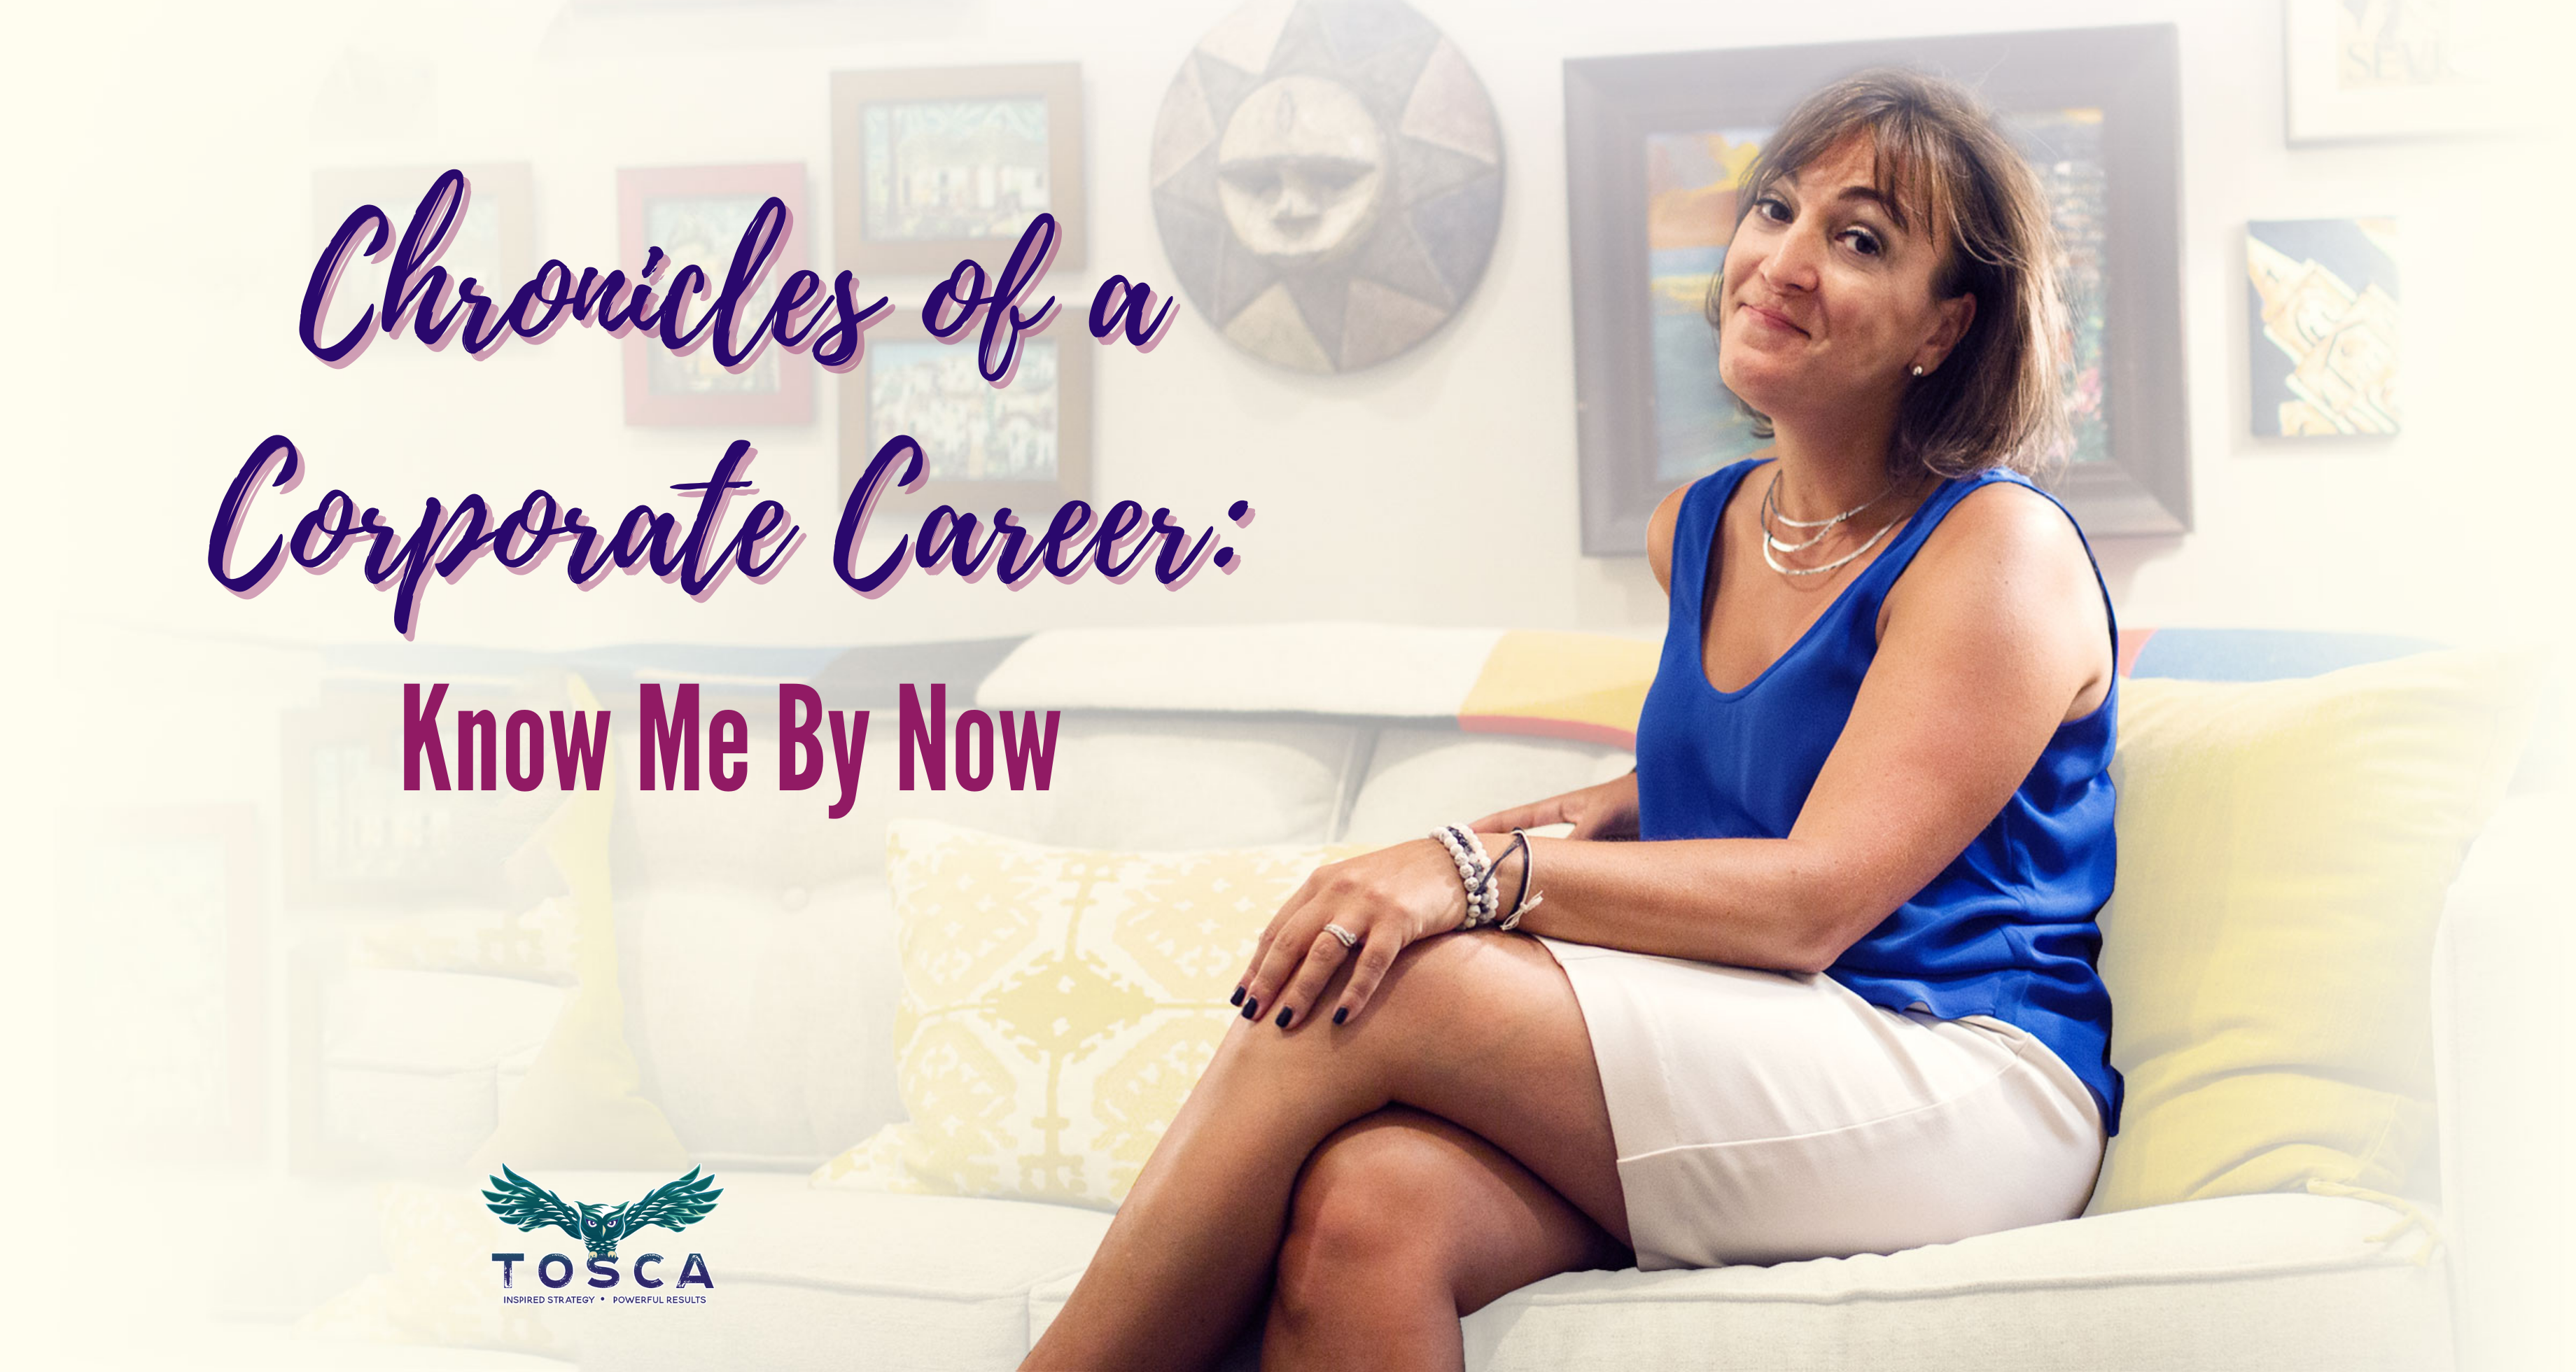 Chronicles of a Corporate Career: Know Me By Now